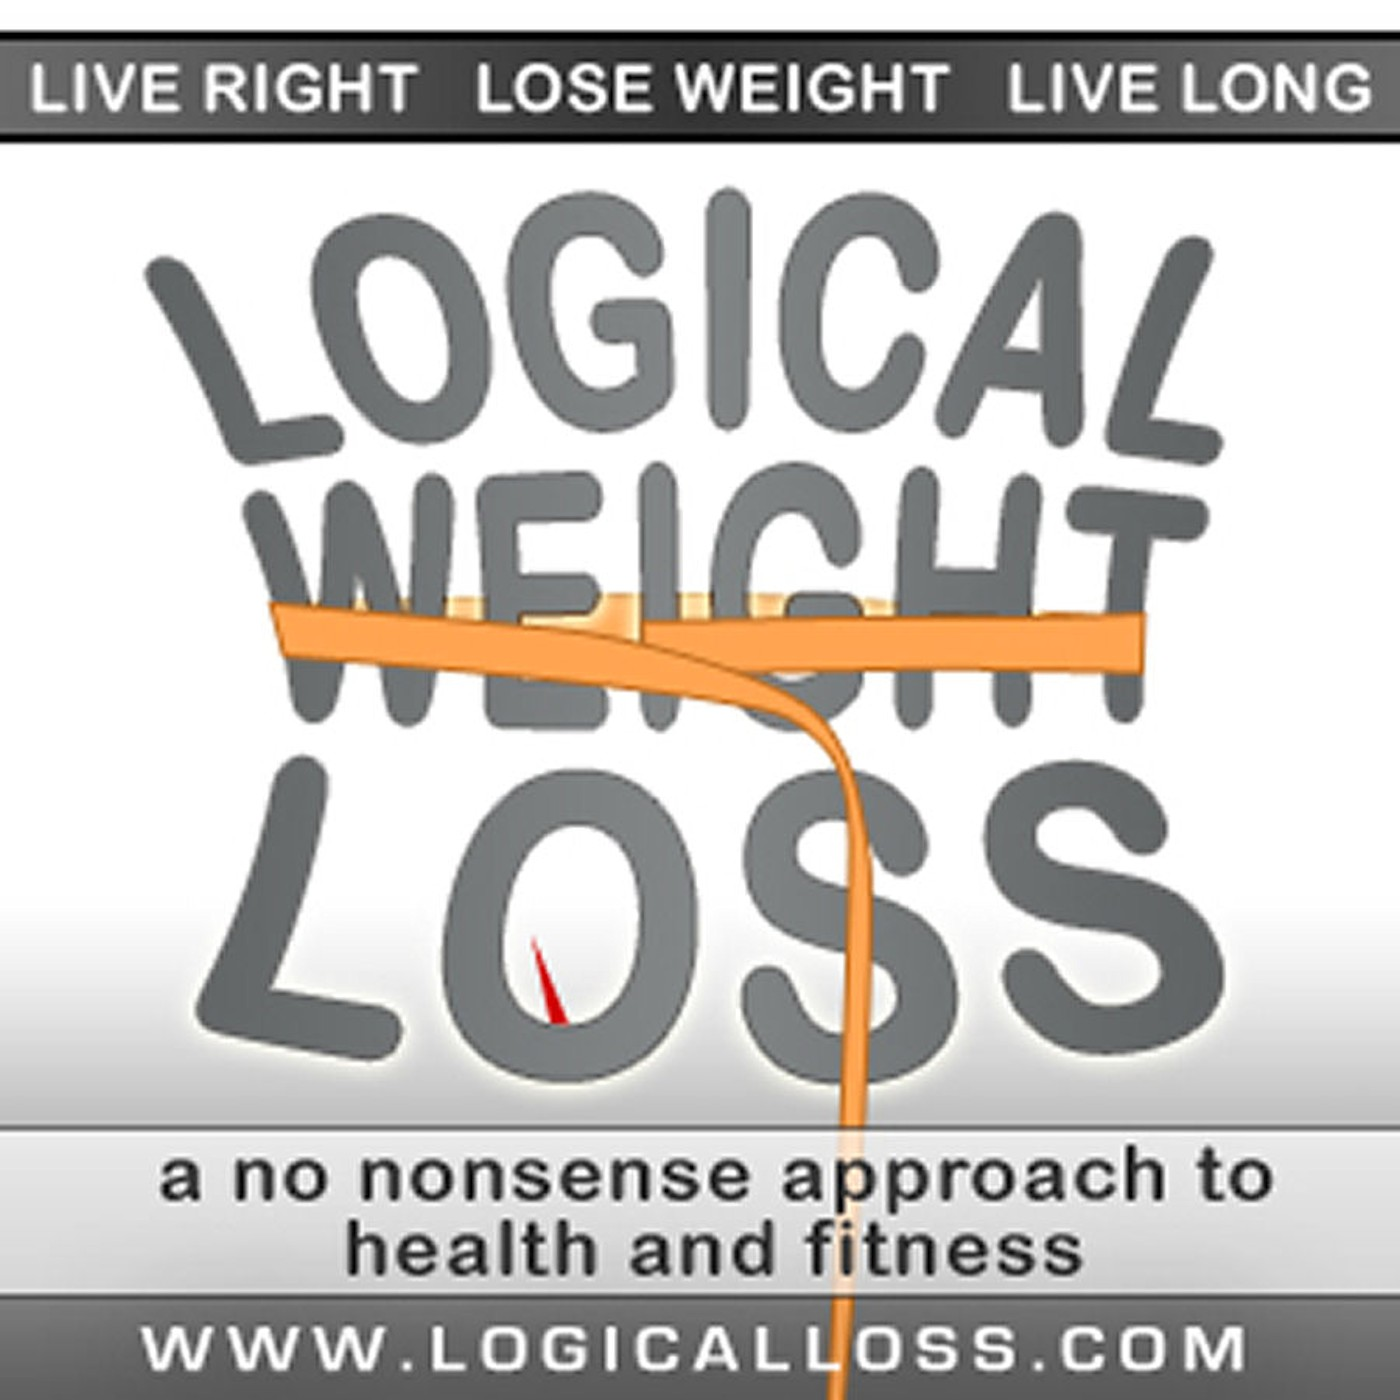 Eat Less Exercise More is Wrong?!?